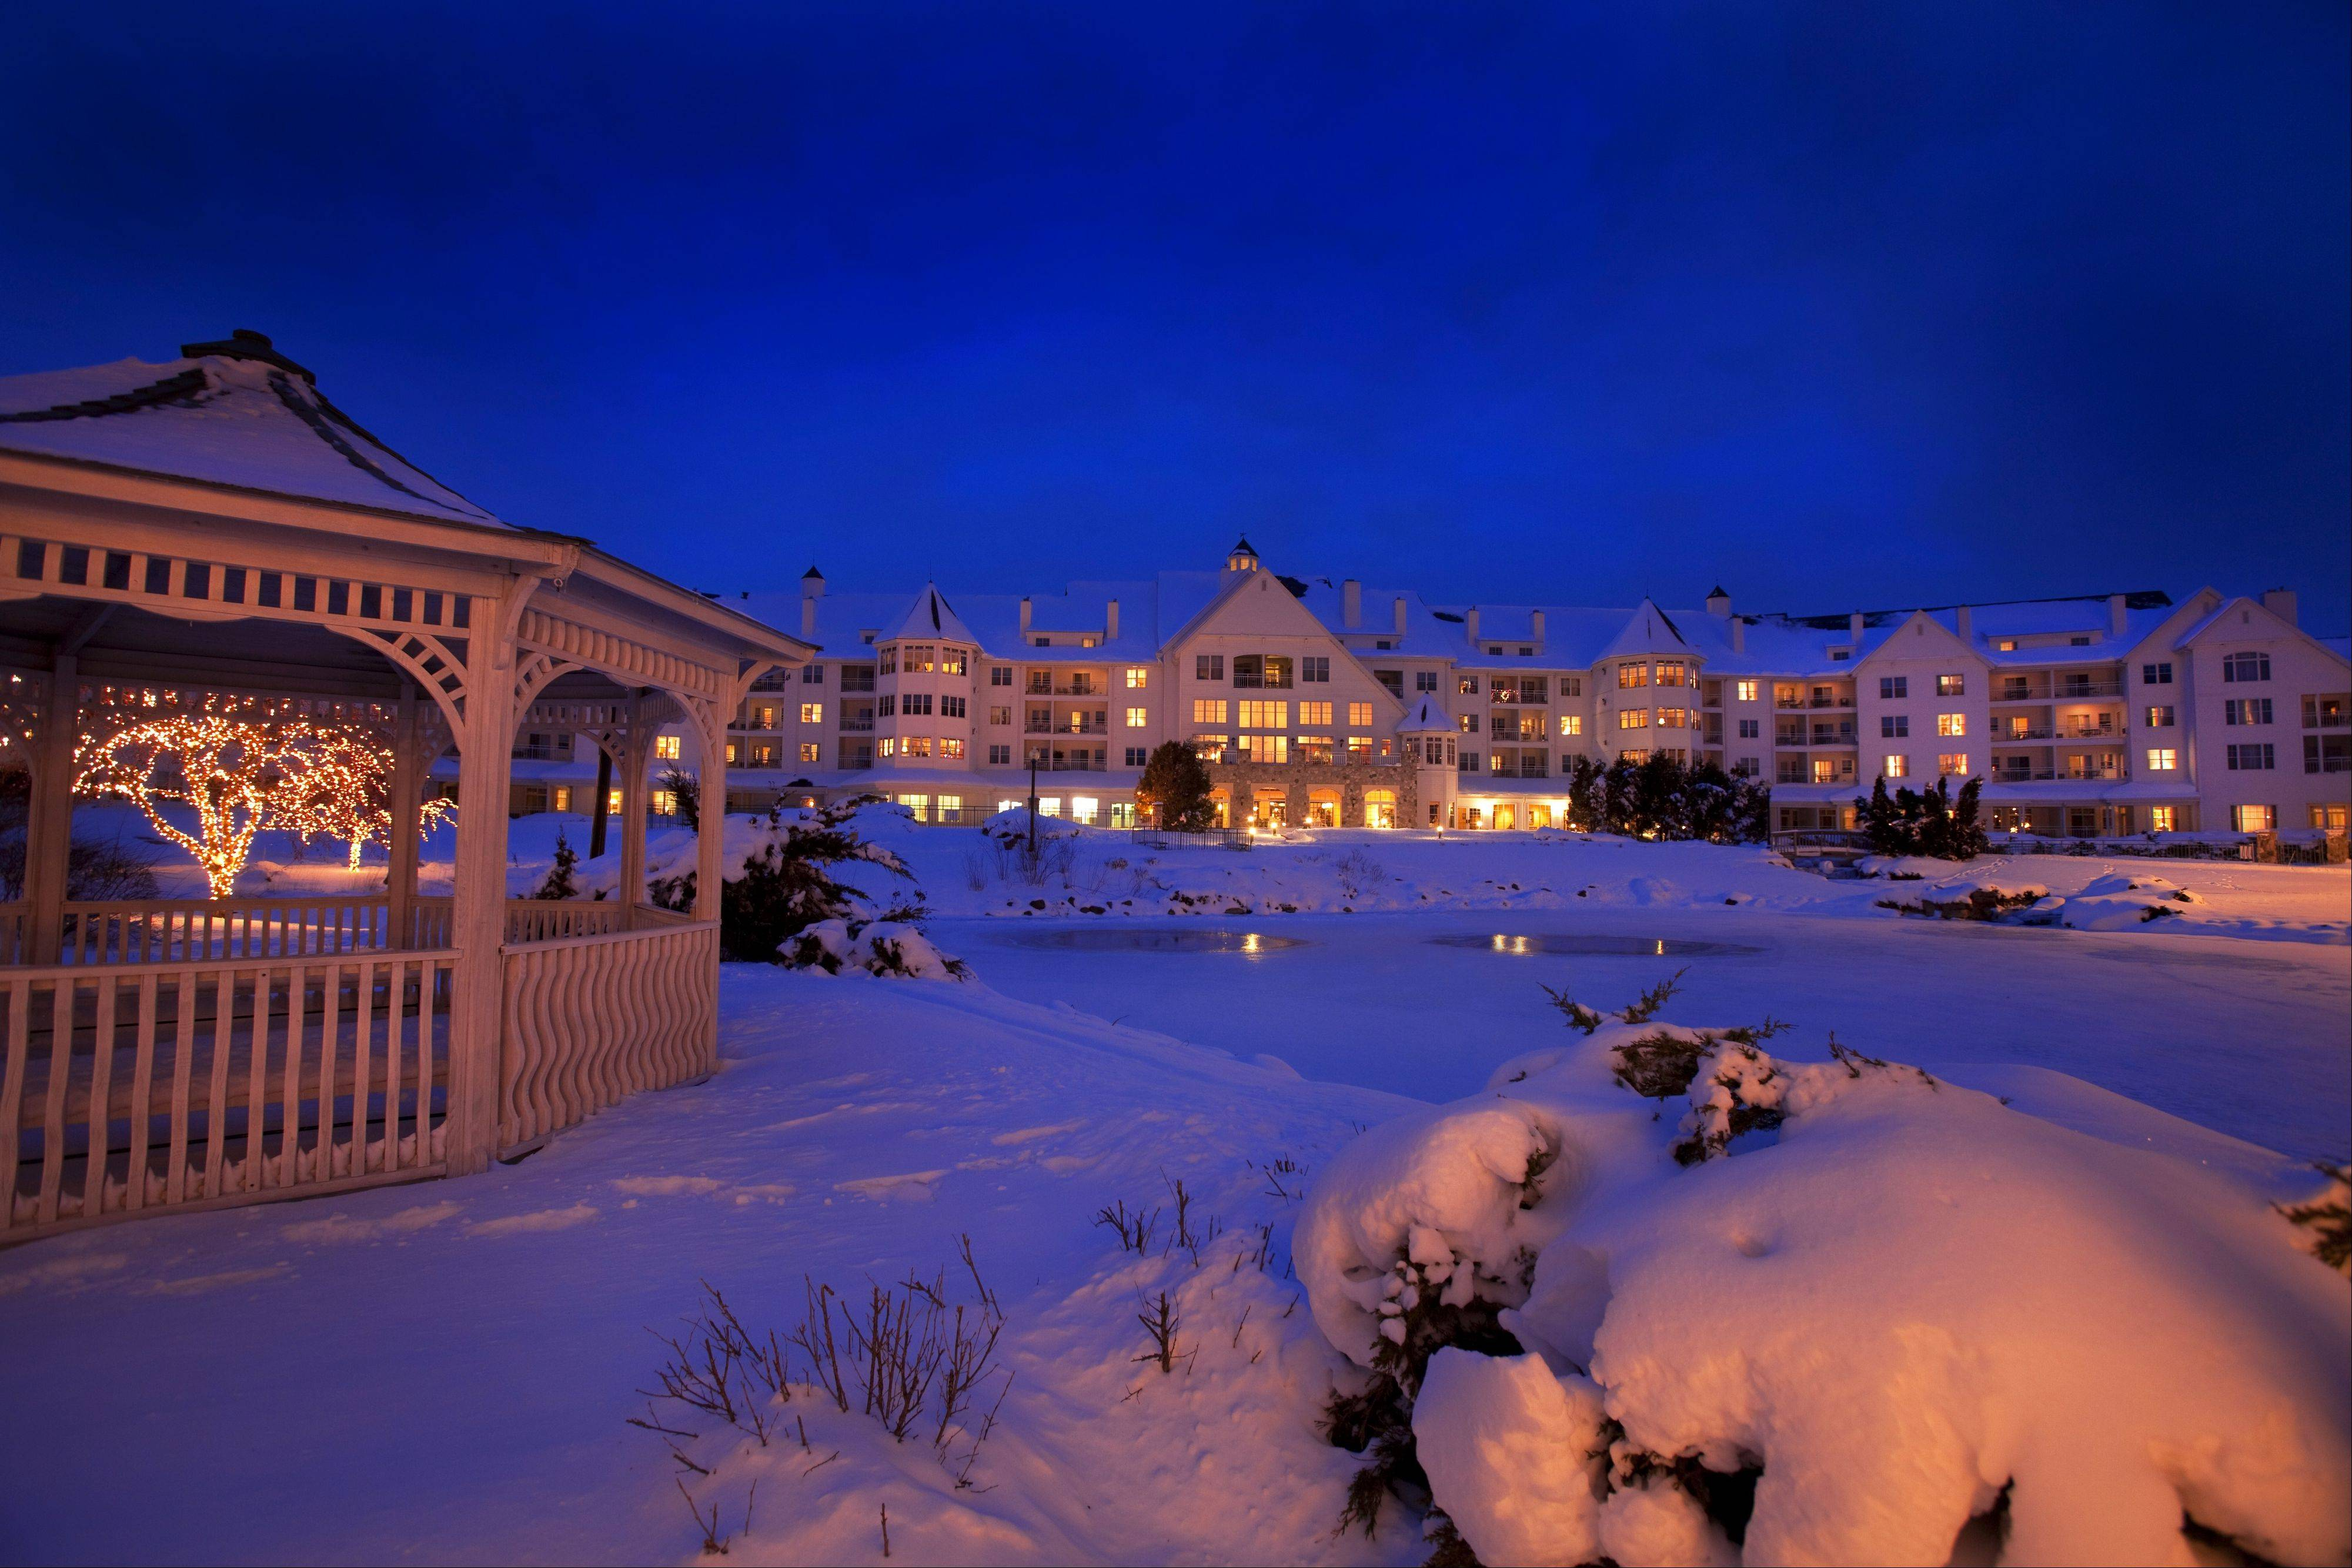 The Osthoff Resort's Old World Christmas Market Dec. 6-15 in Elkhart Lake, Wis., is a Midwestern take on the celebrated Christkindlesmarkt in Nuremberg, Germany.